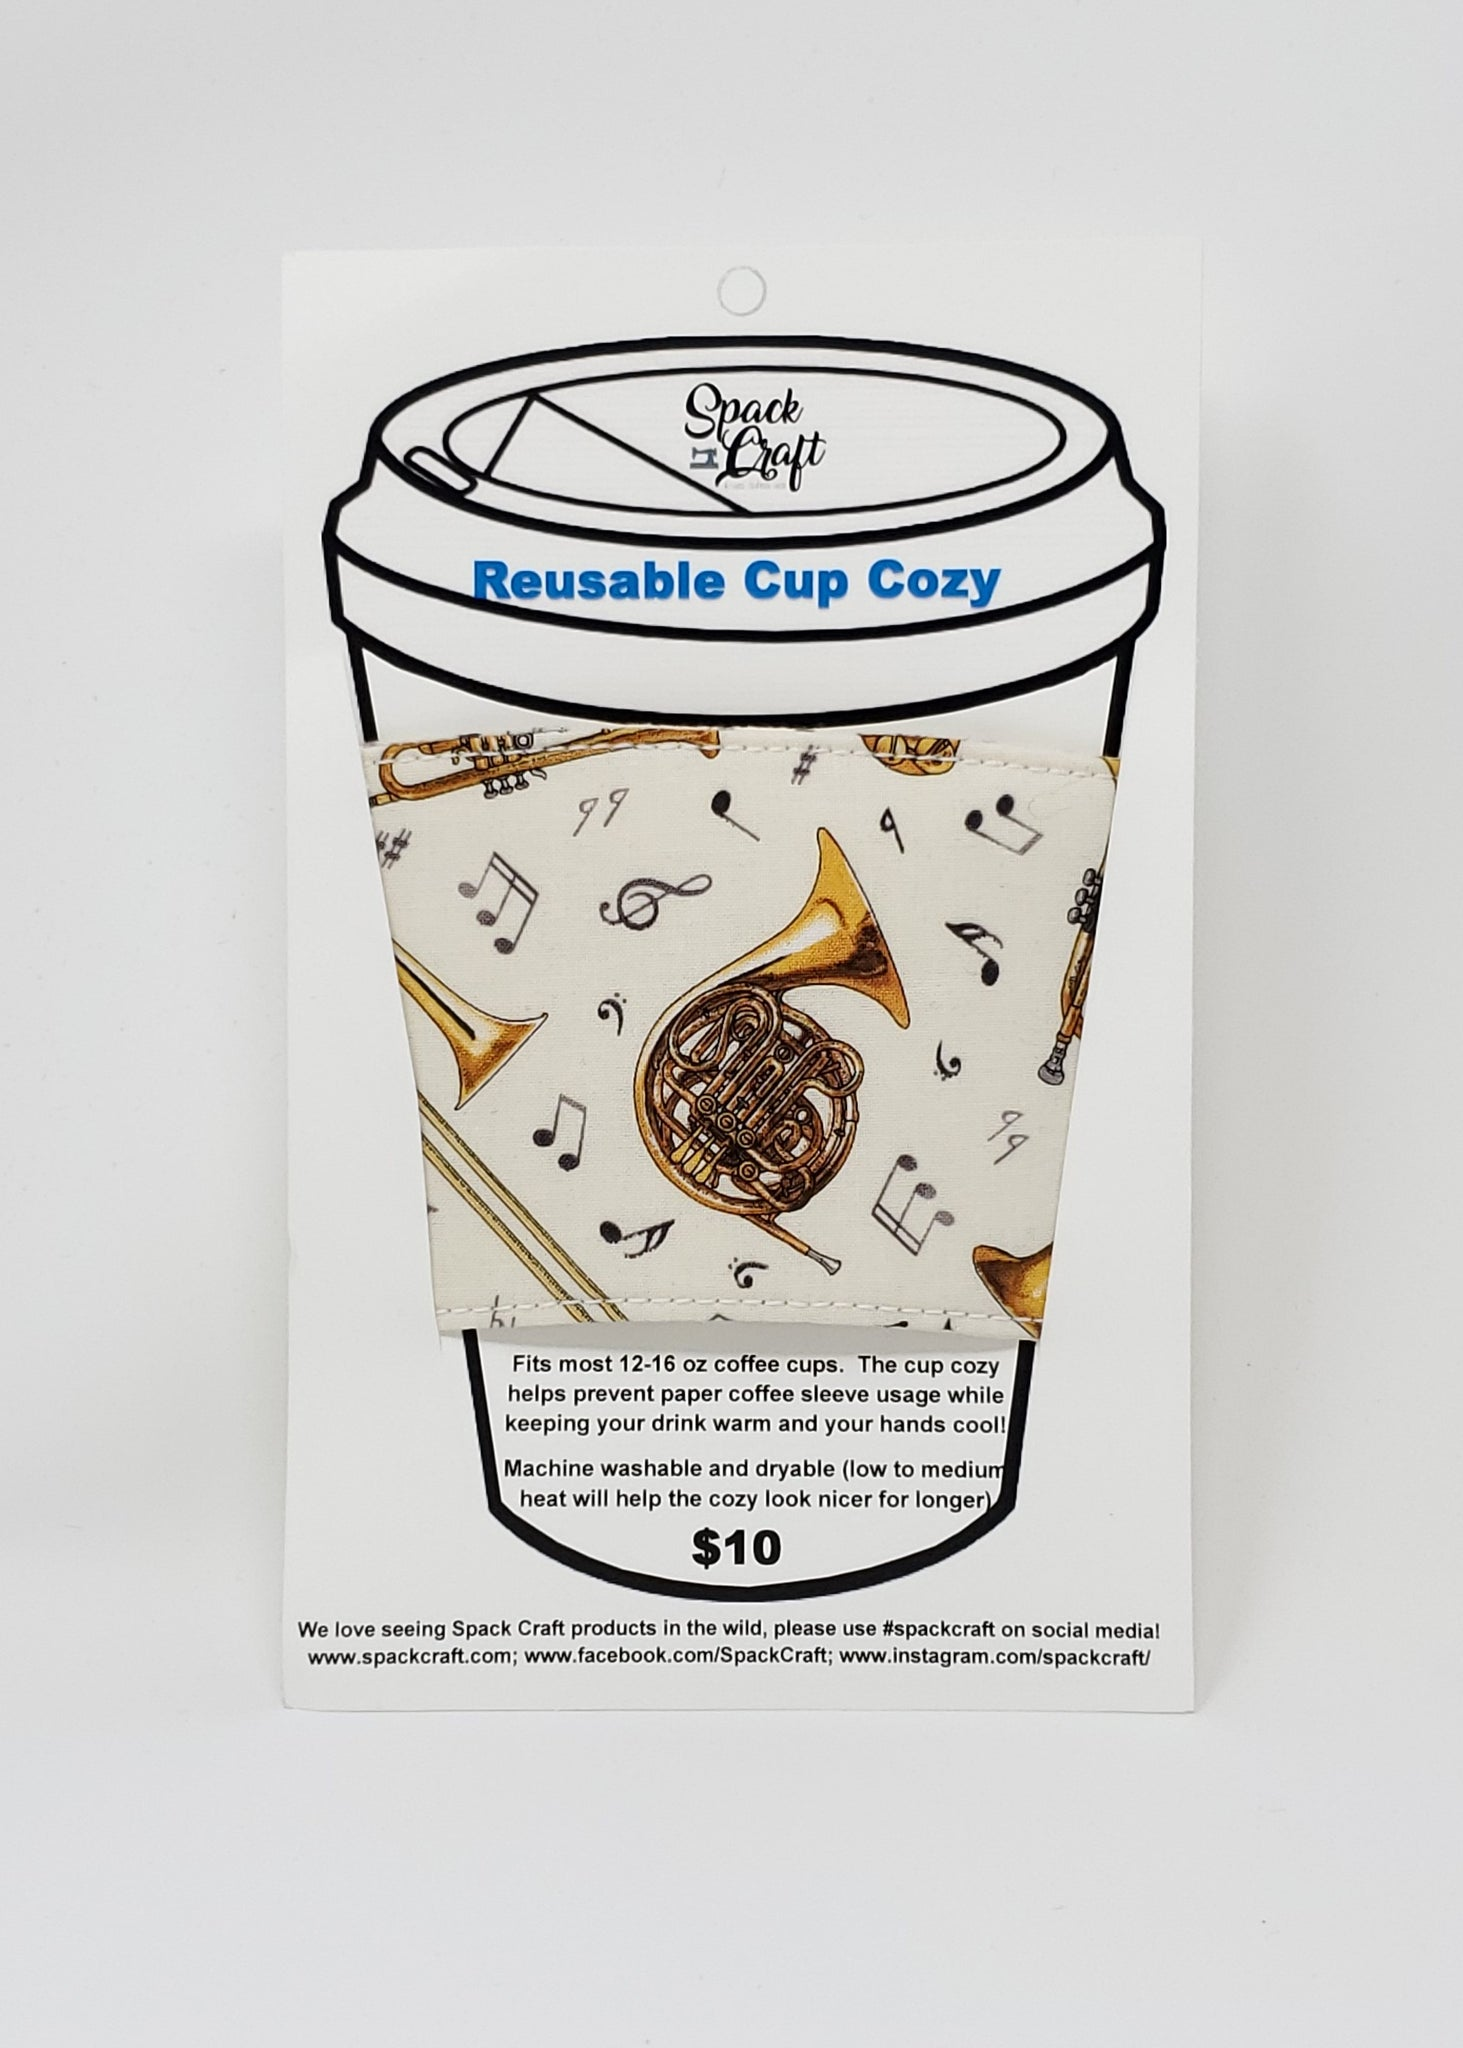 Reusable cup cozy - Musical Instruments - in packaging